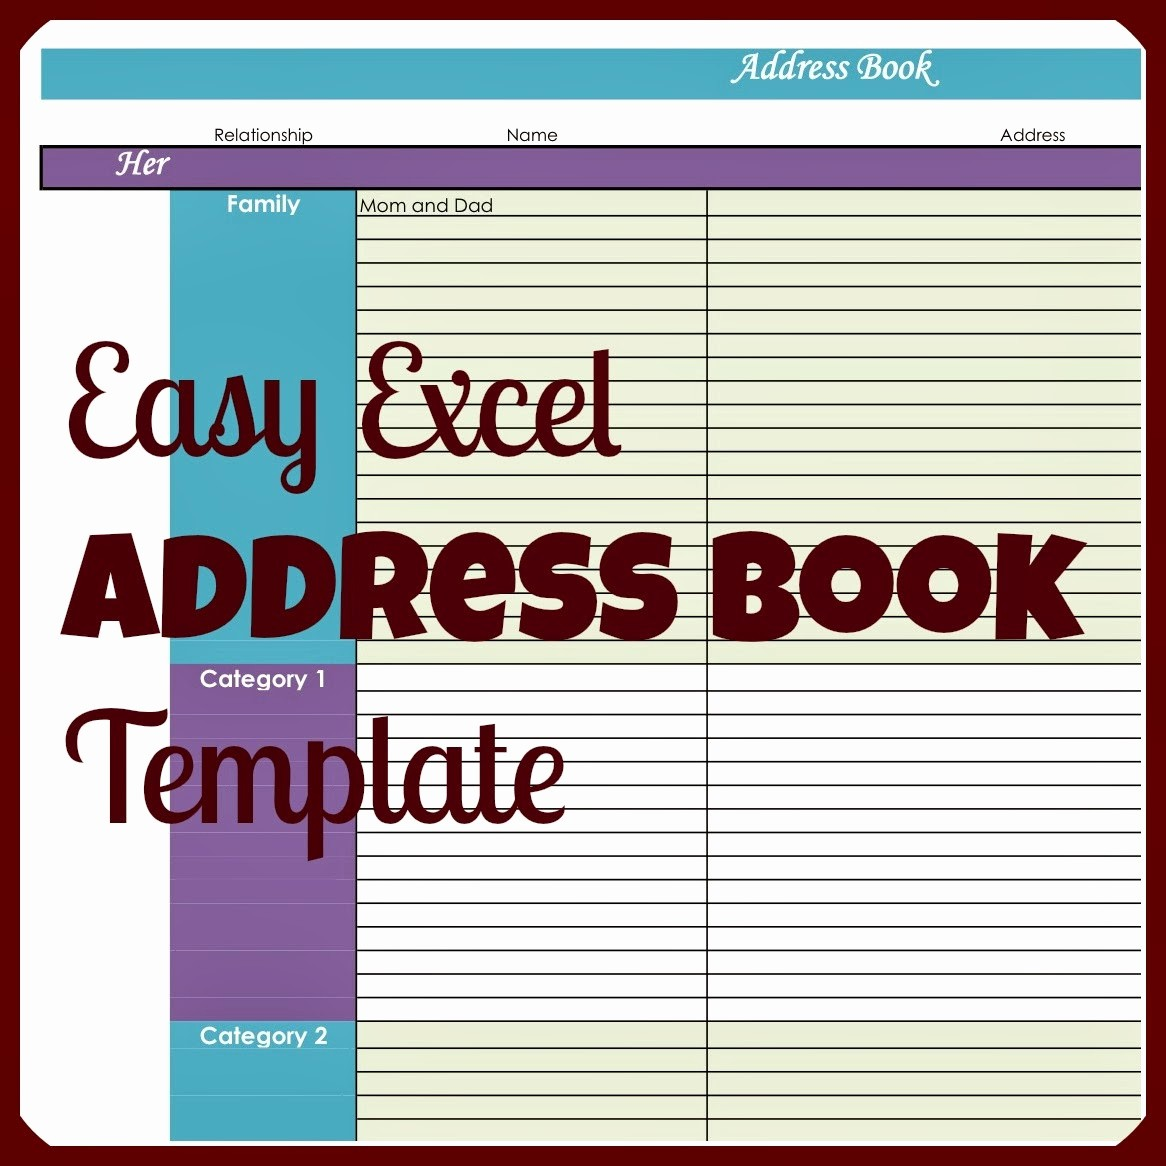 Printable Address Book Template Word Lovely Laura S Plans Easy Excel Address Book Template